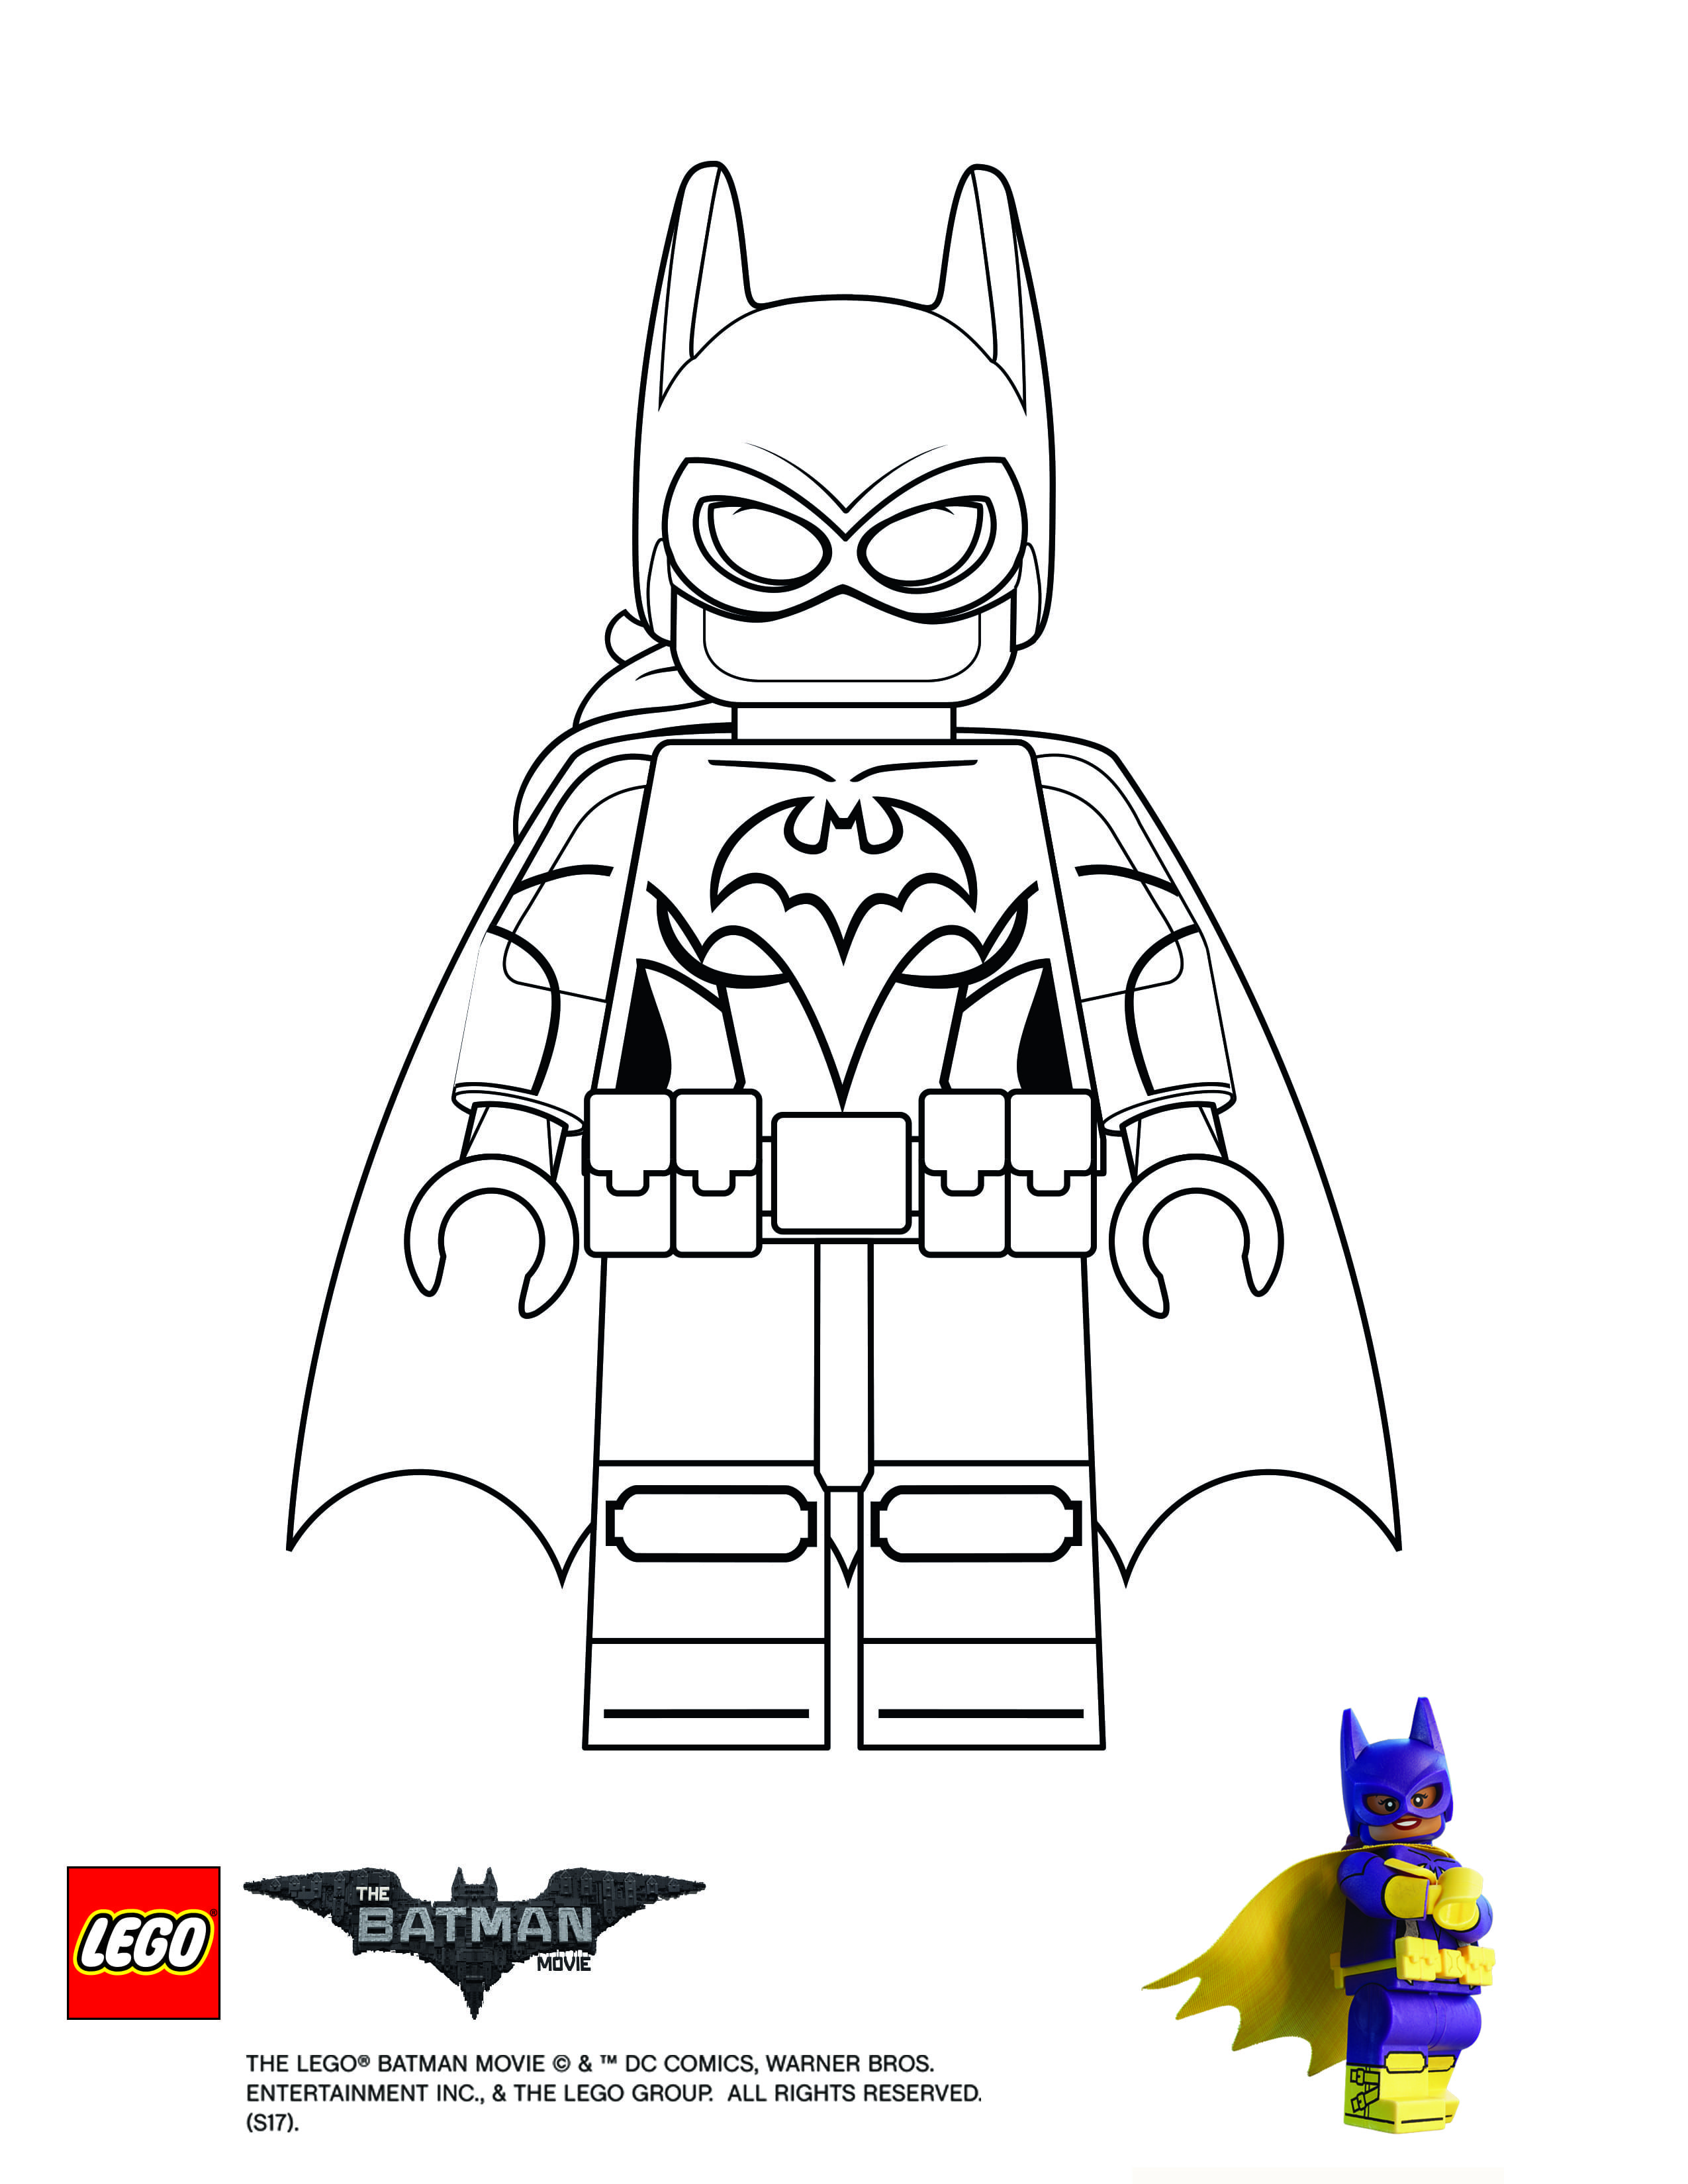 Finish Drawing Batgirl Lego Coloring Pages Superman Coloring Pages Batman Coloring Pages